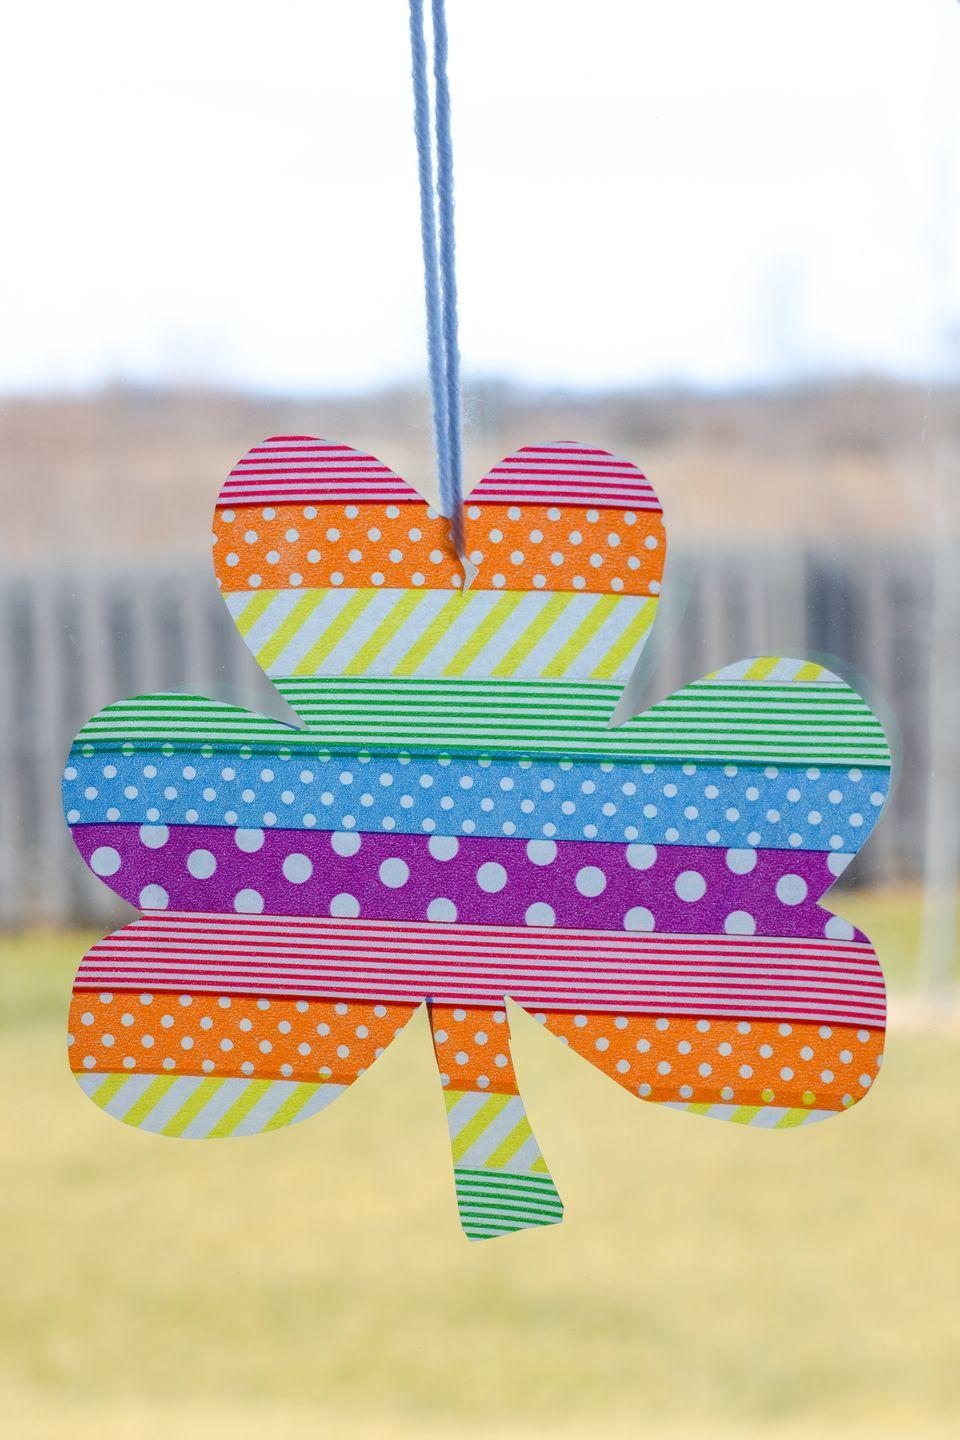 """<p>Remember all that washi tape you bought for the bullet journal you never used? Here's a clever way to finally use it. </p><p><em><a href=""""https://typicallysimple.com/washi-tape-shamrock-suncatcher/"""" rel=""""nofollow noopener"""" target=""""_blank"""" data-ylk=""""slk:Get the tutorial at Typically Simple »"""" class=""""link rapid-noclick-resp"""">Get the tutorial at Typically Simple » </a></em></p>"""